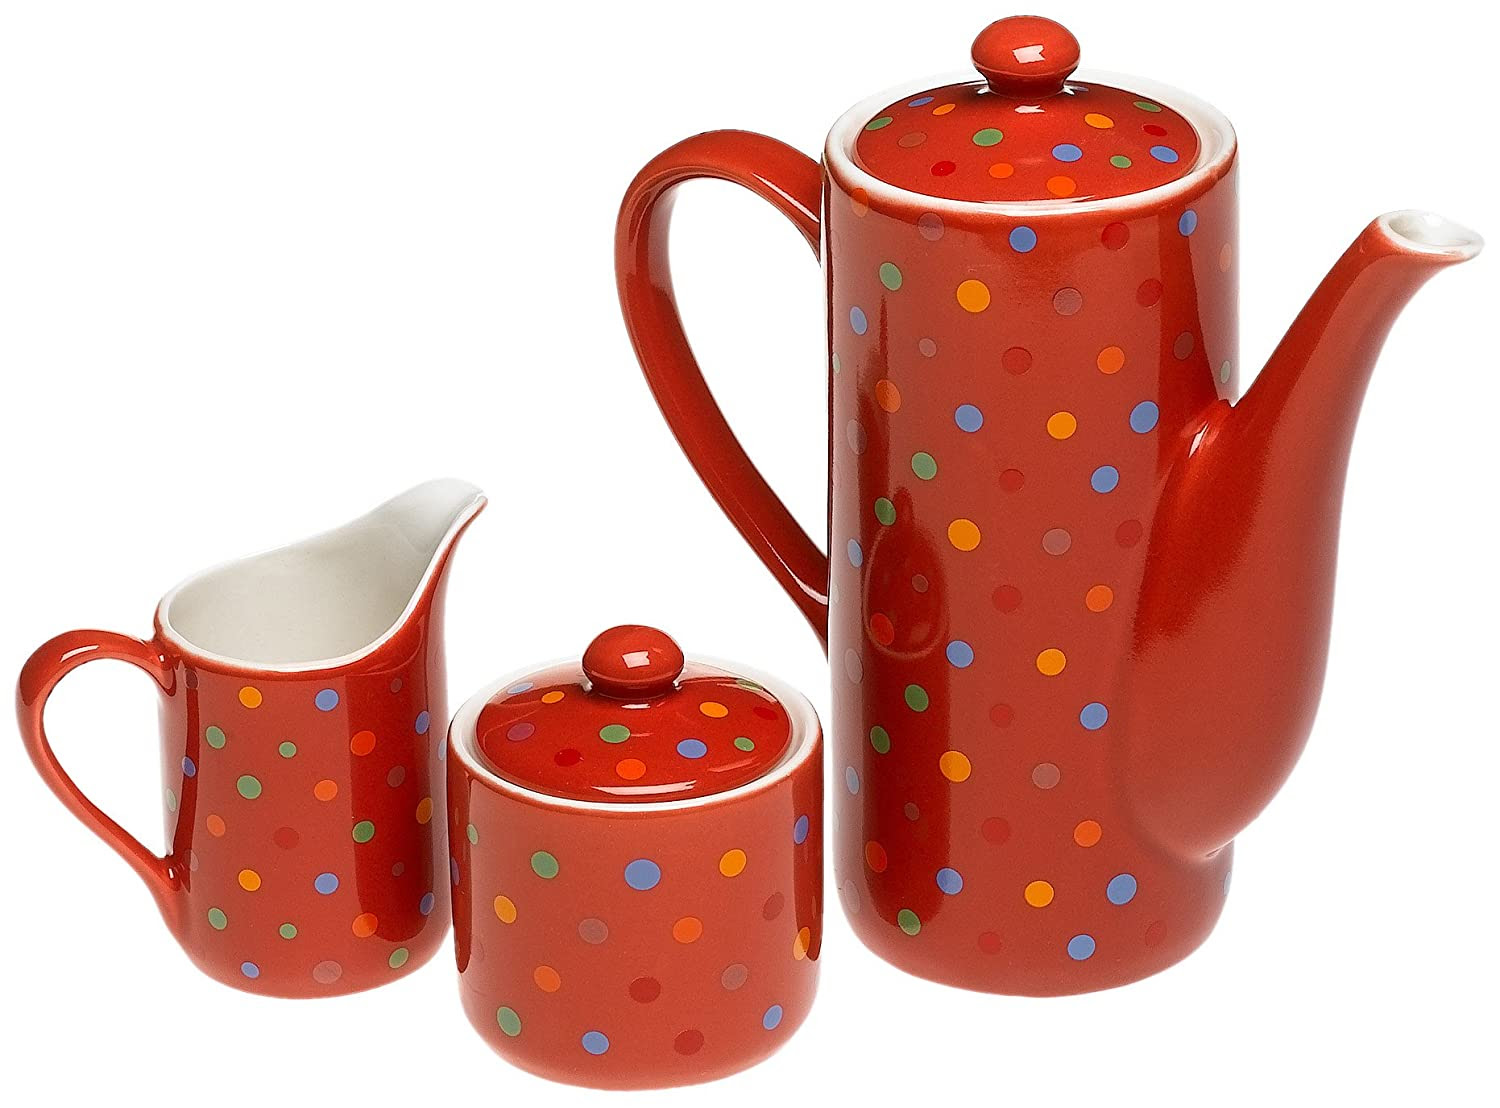 Yedi Houseware Classic Coffee and Tea Polka Dot Teapot, Sugar and Creamer Set | Yedi Houseware